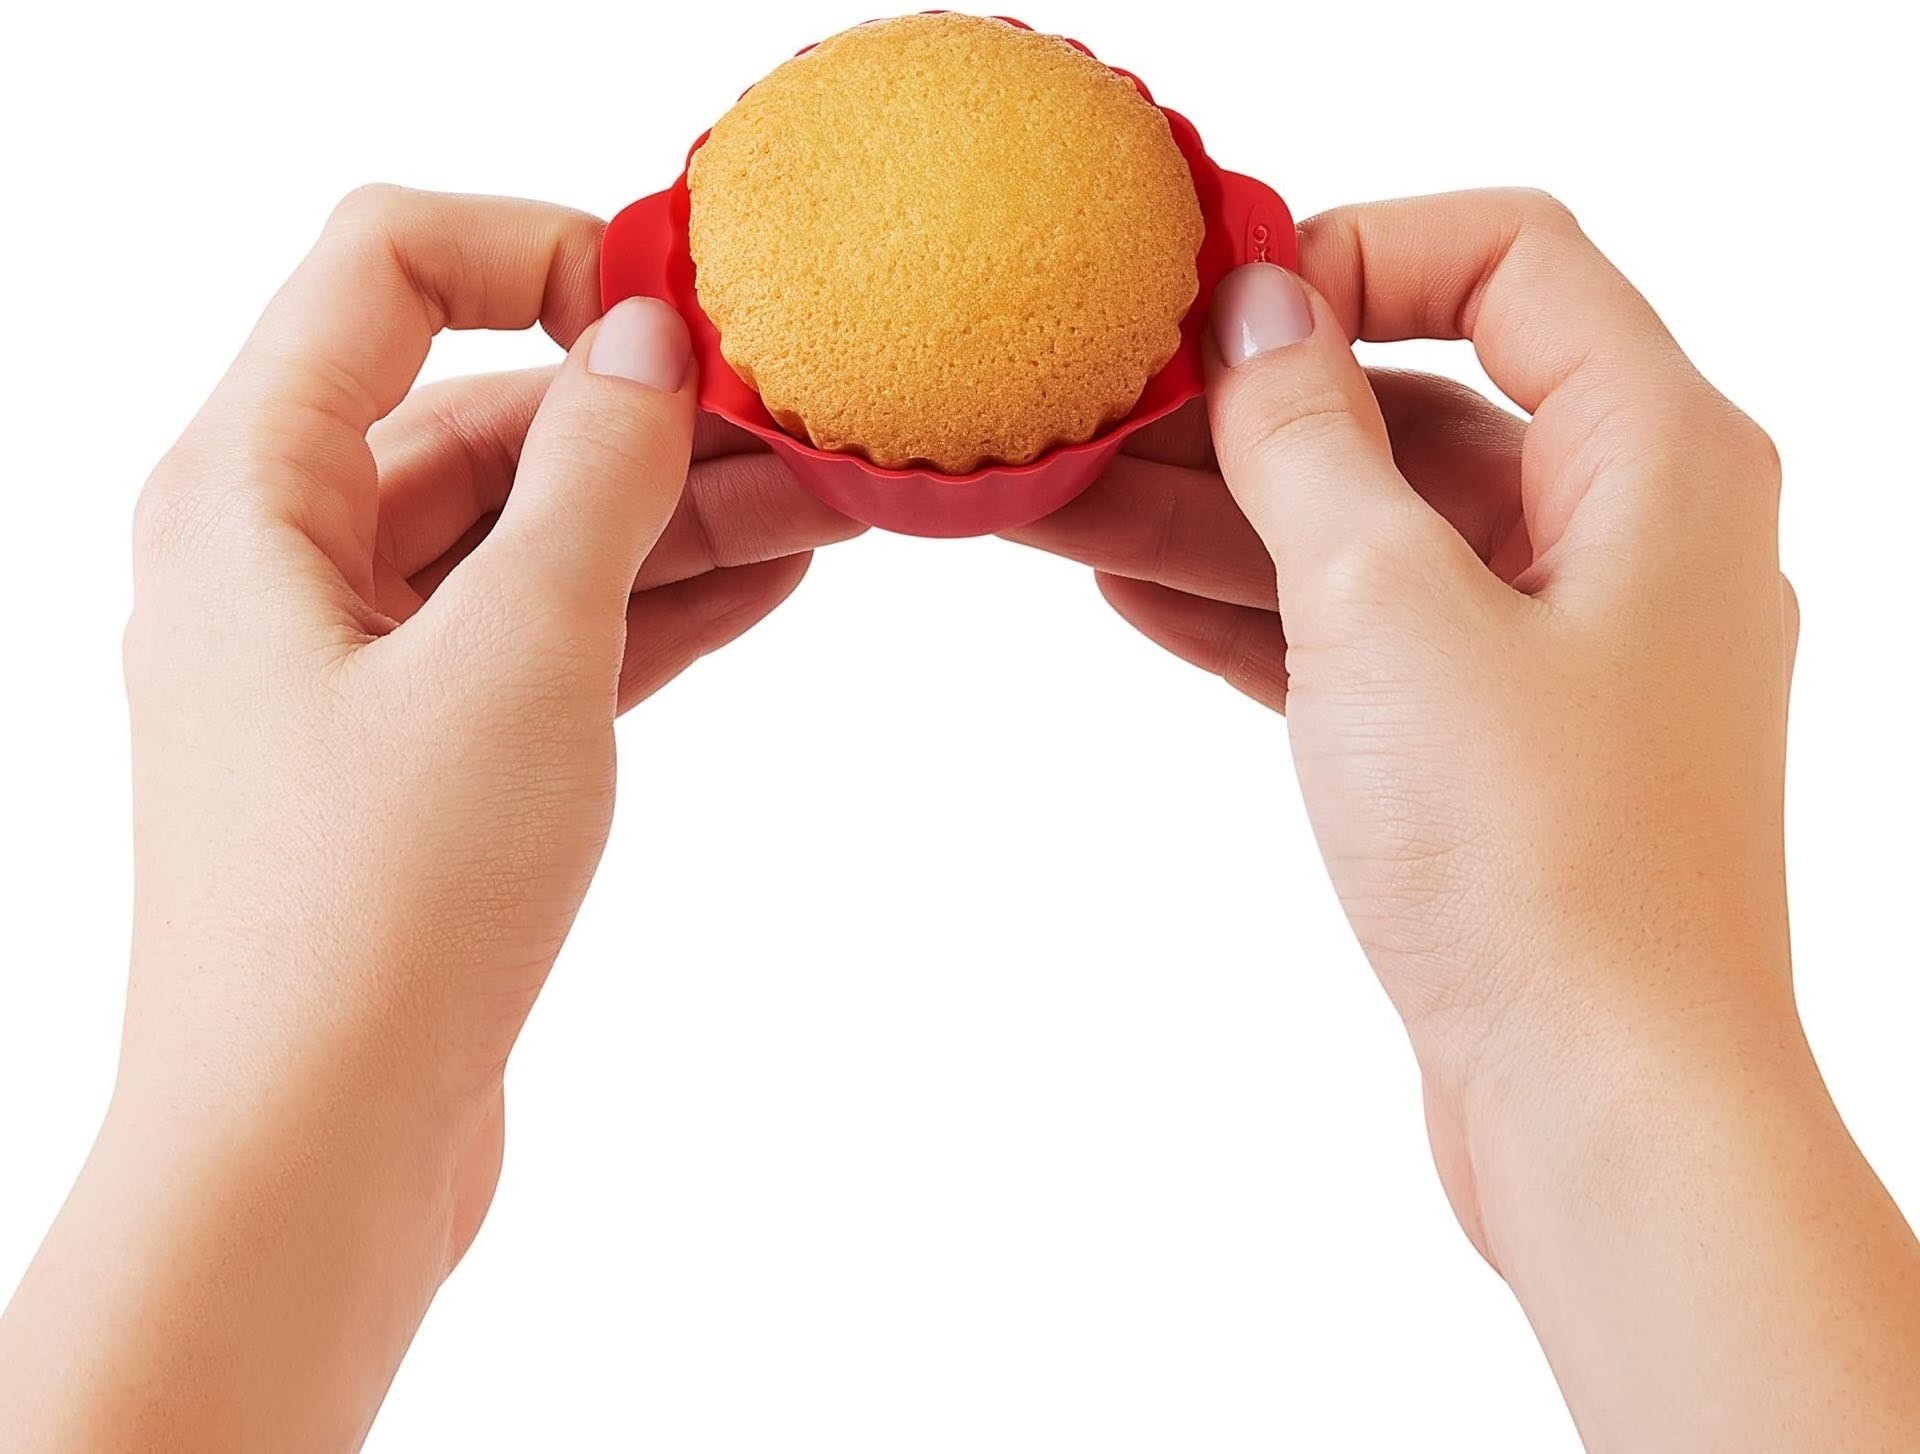 oxo-good-grips-silicone-baking-cups-2